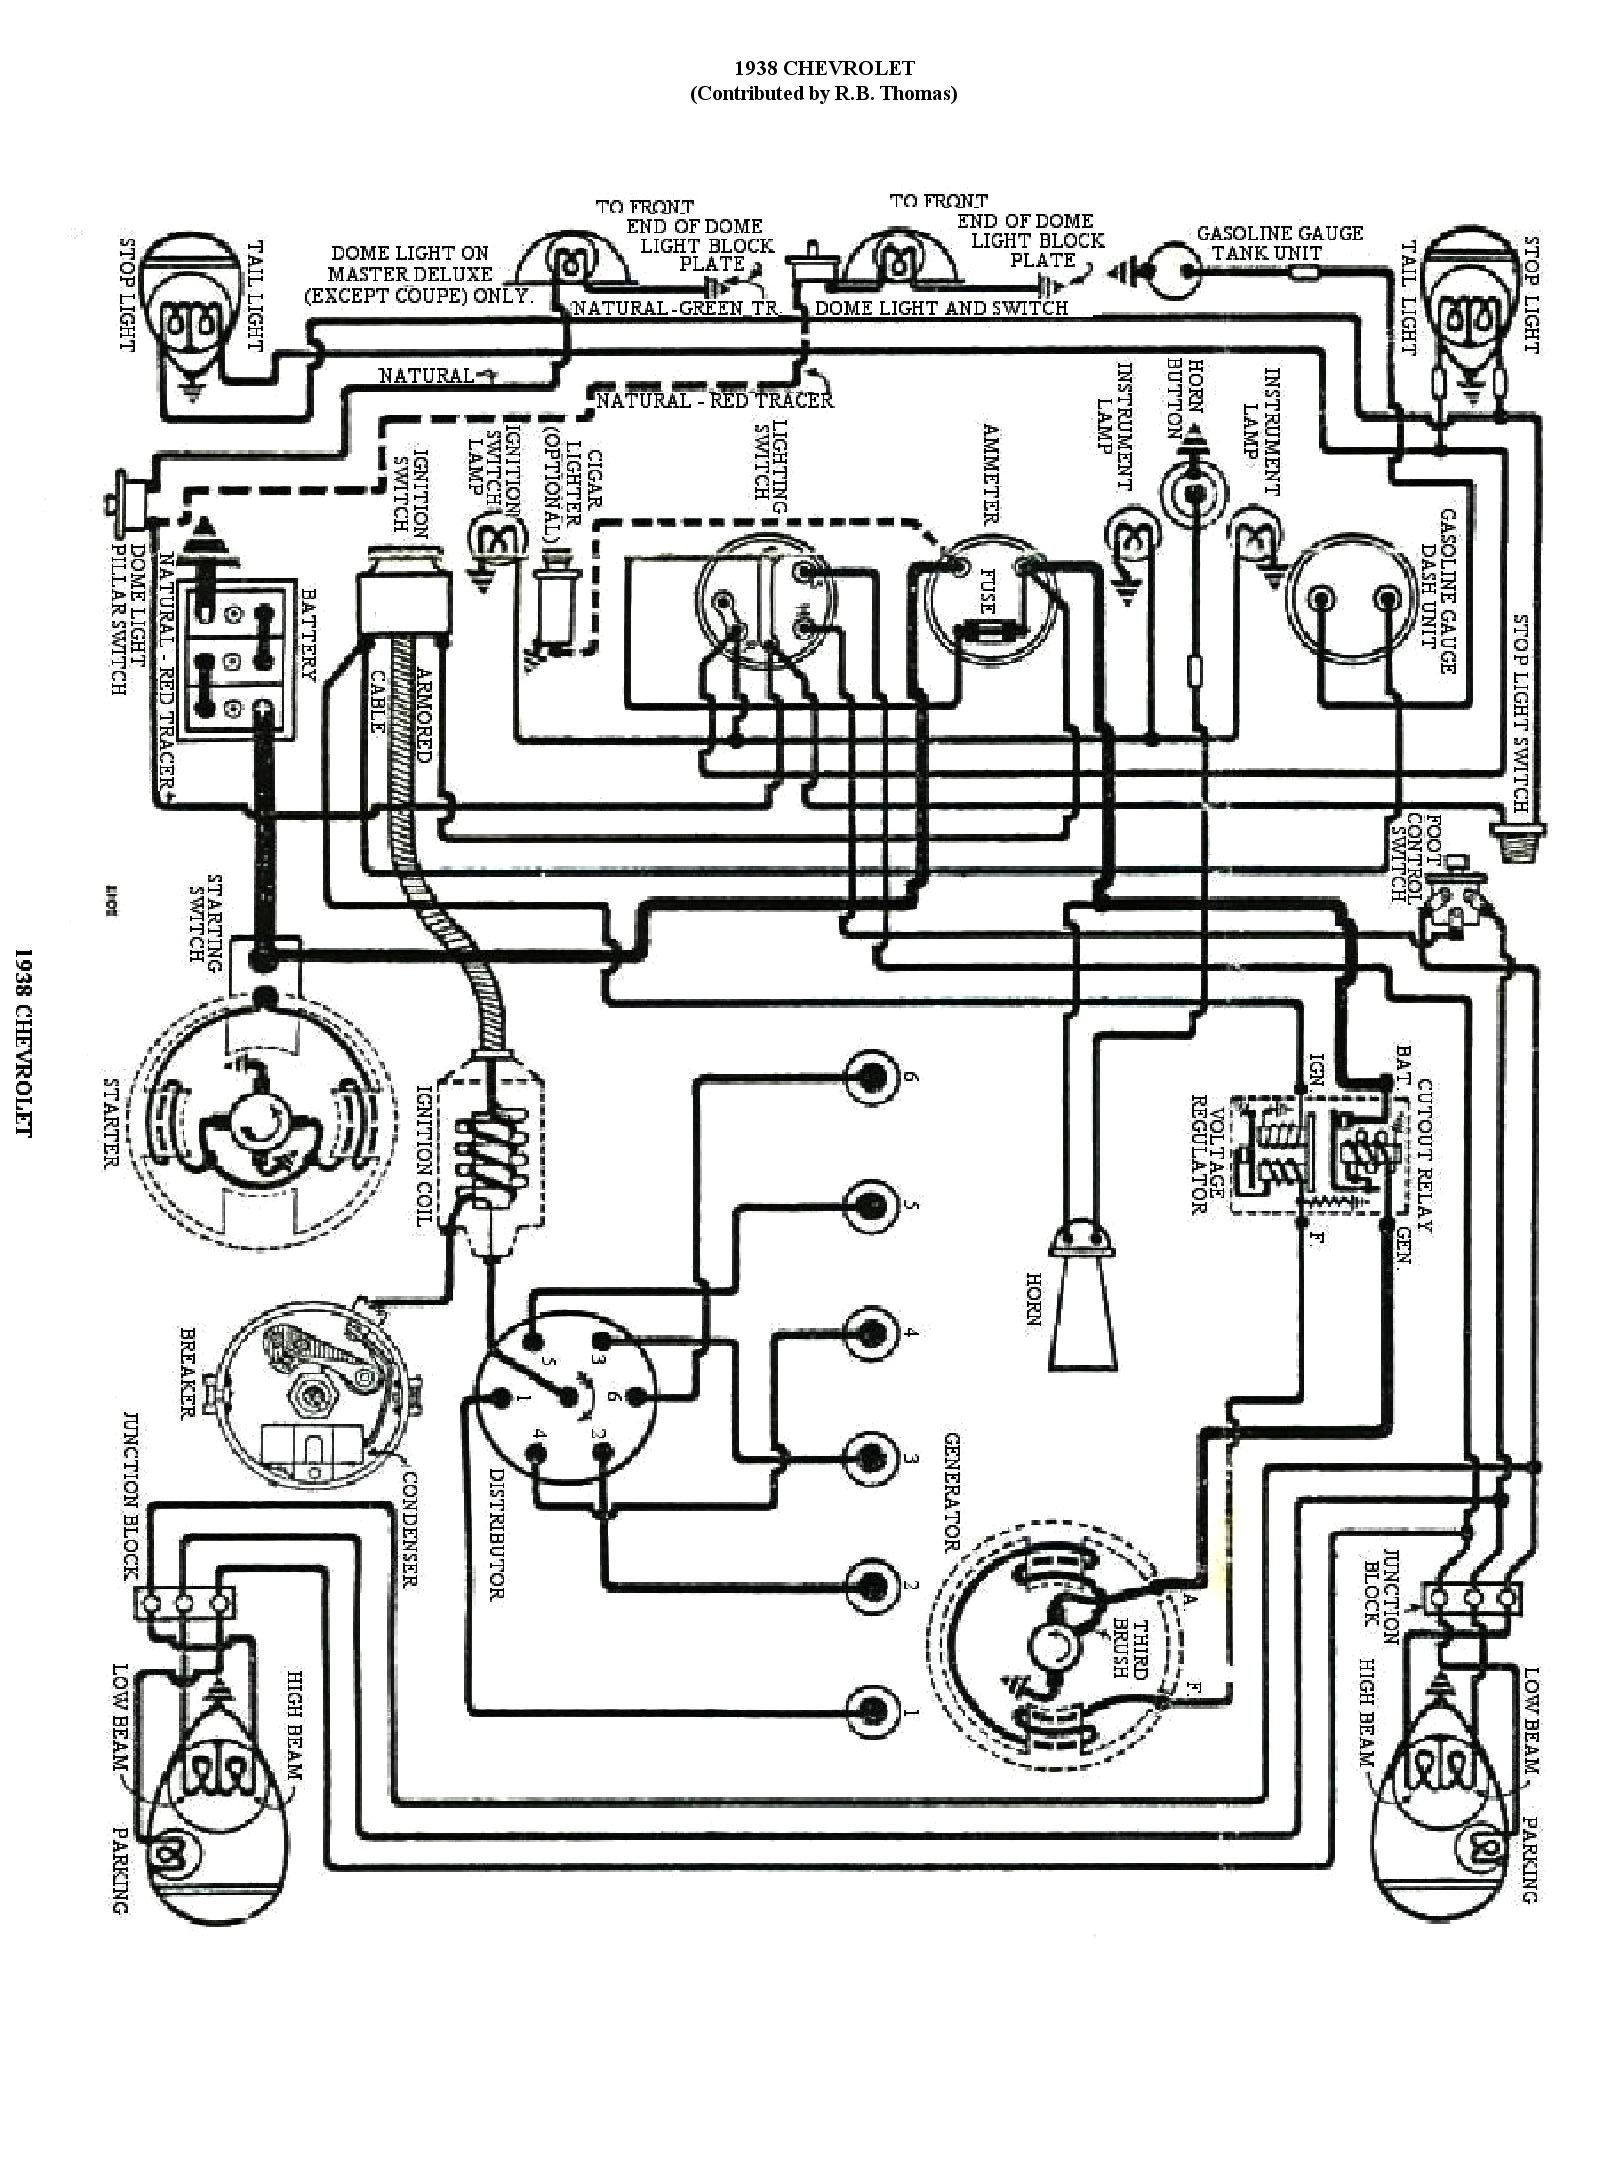 1929 chevy wiring diagram